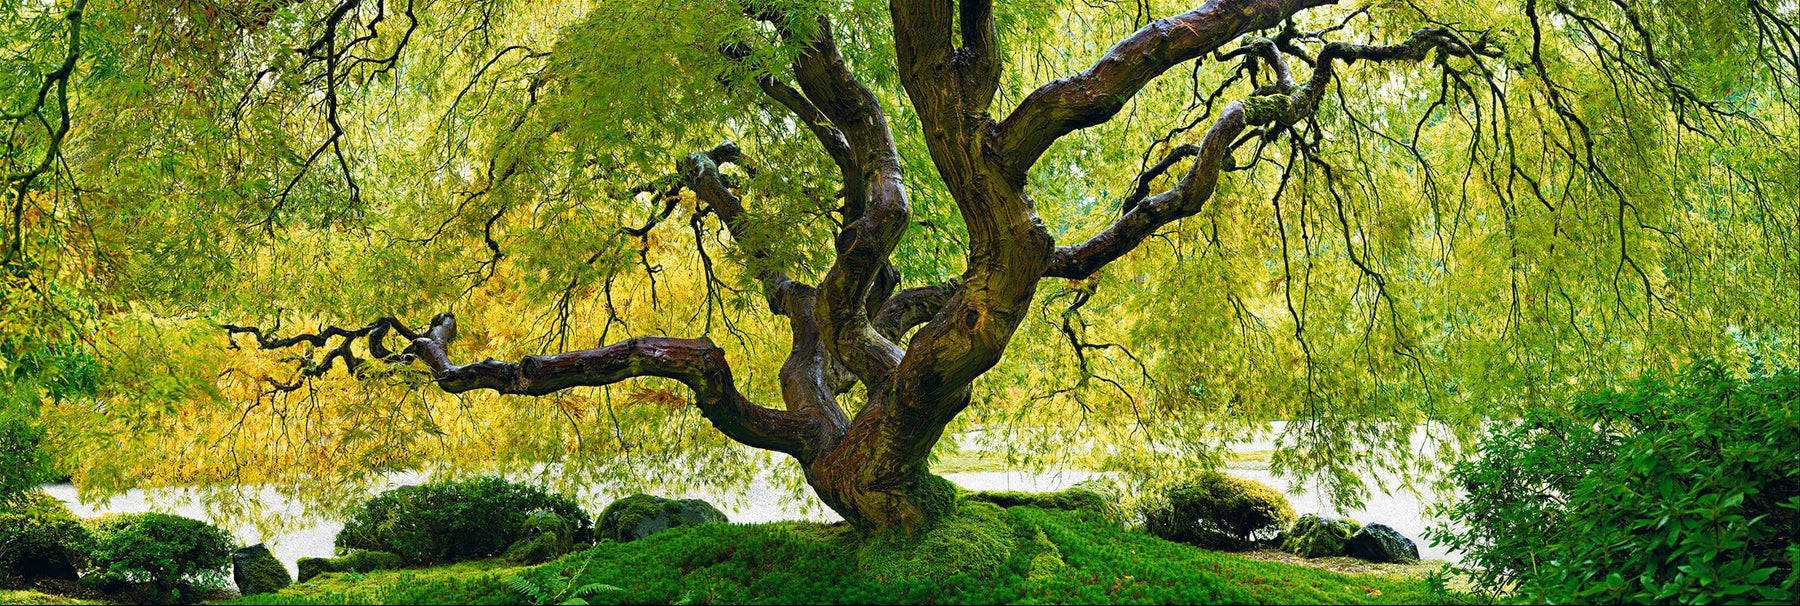 Japanese Maple tree filled with green and yellow leaves on a moss covered hill in Oregon